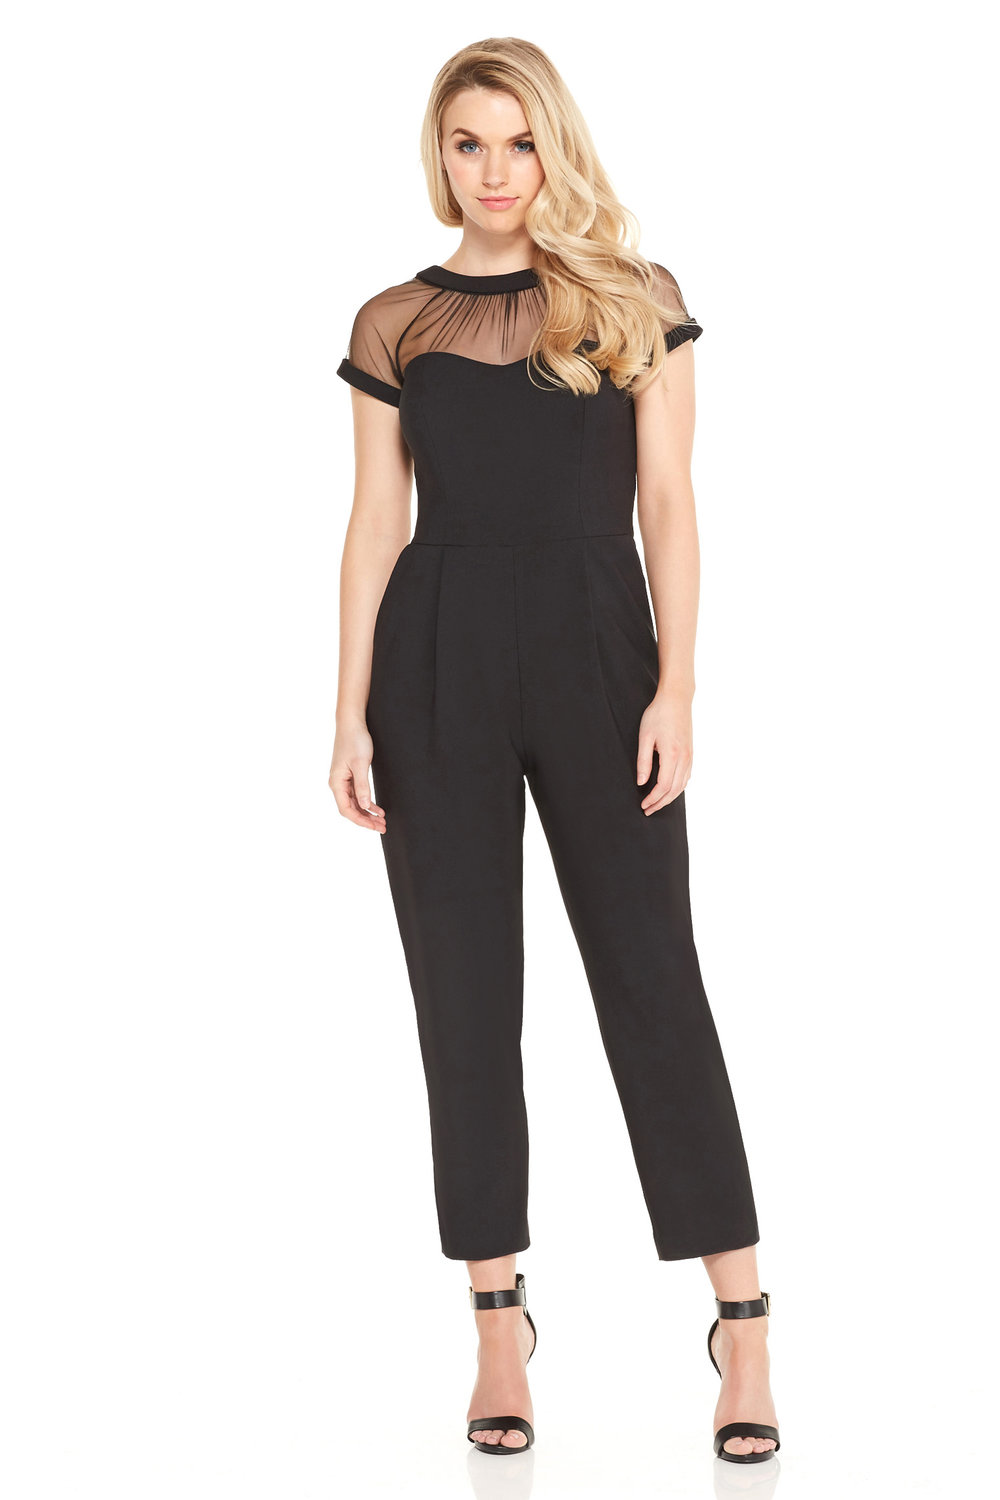 Illusion Jumpsuit | $148